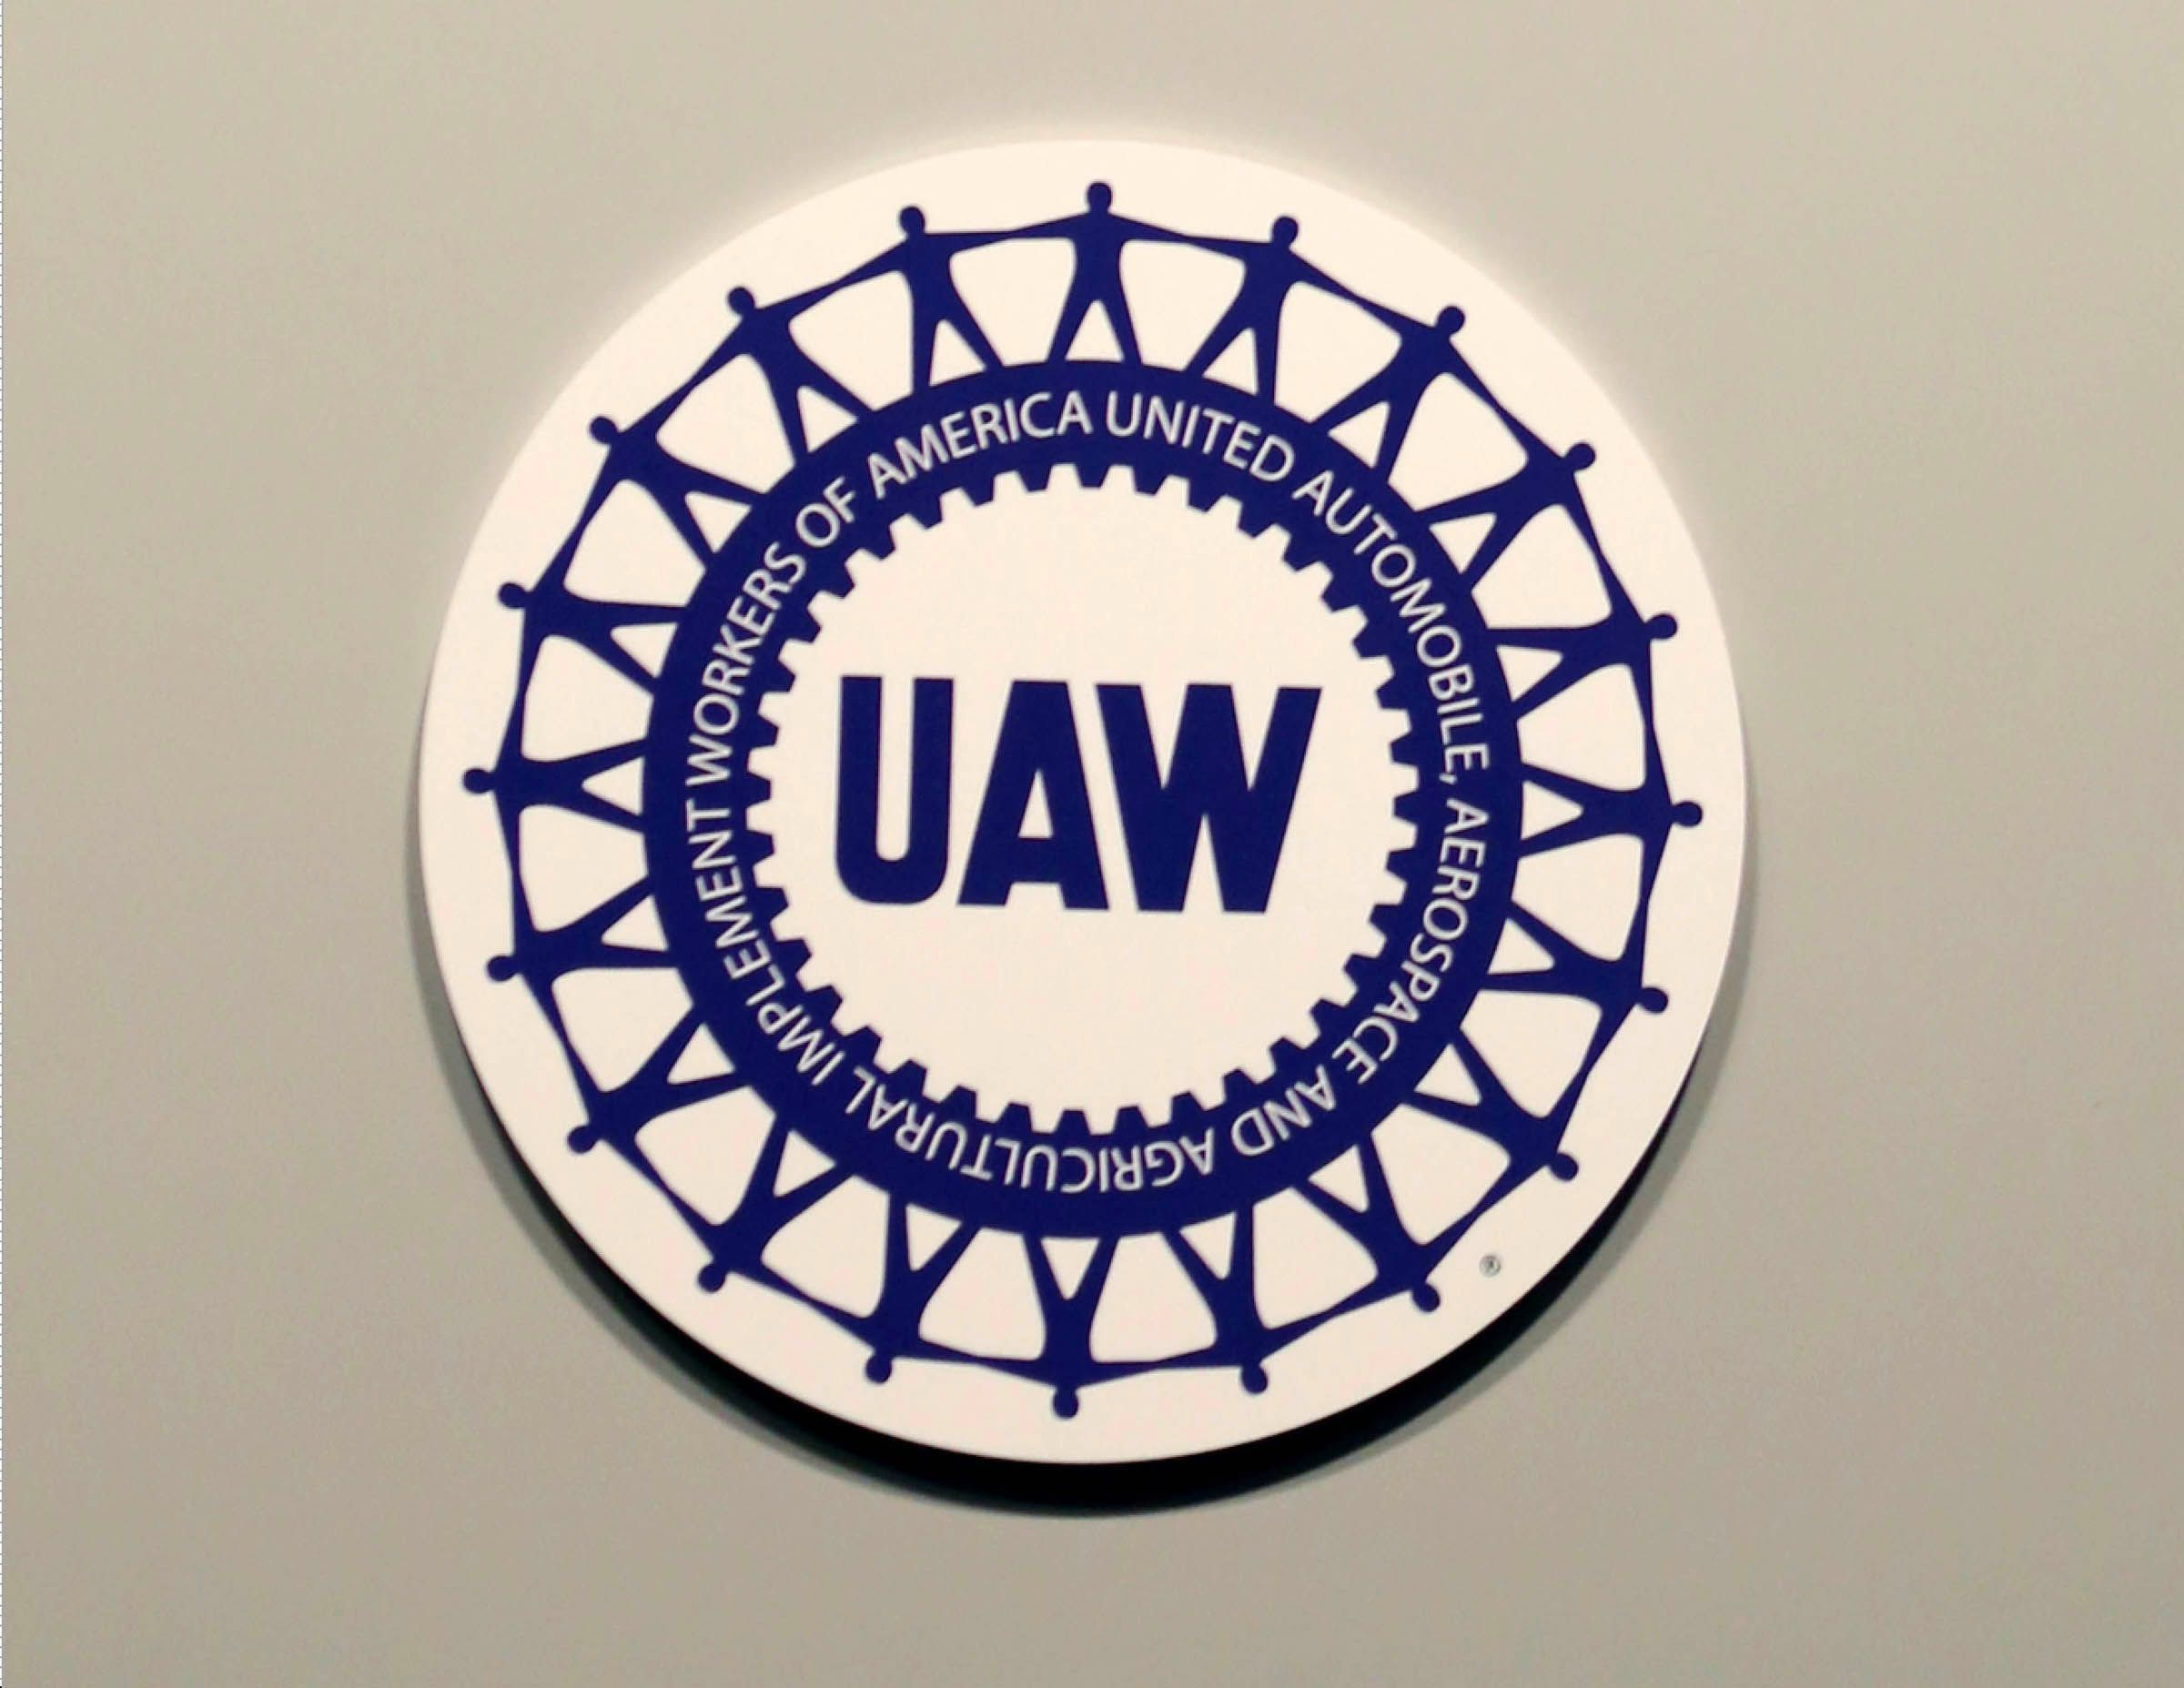 local uaws prep gm workers for strike  extends ford and fca contract